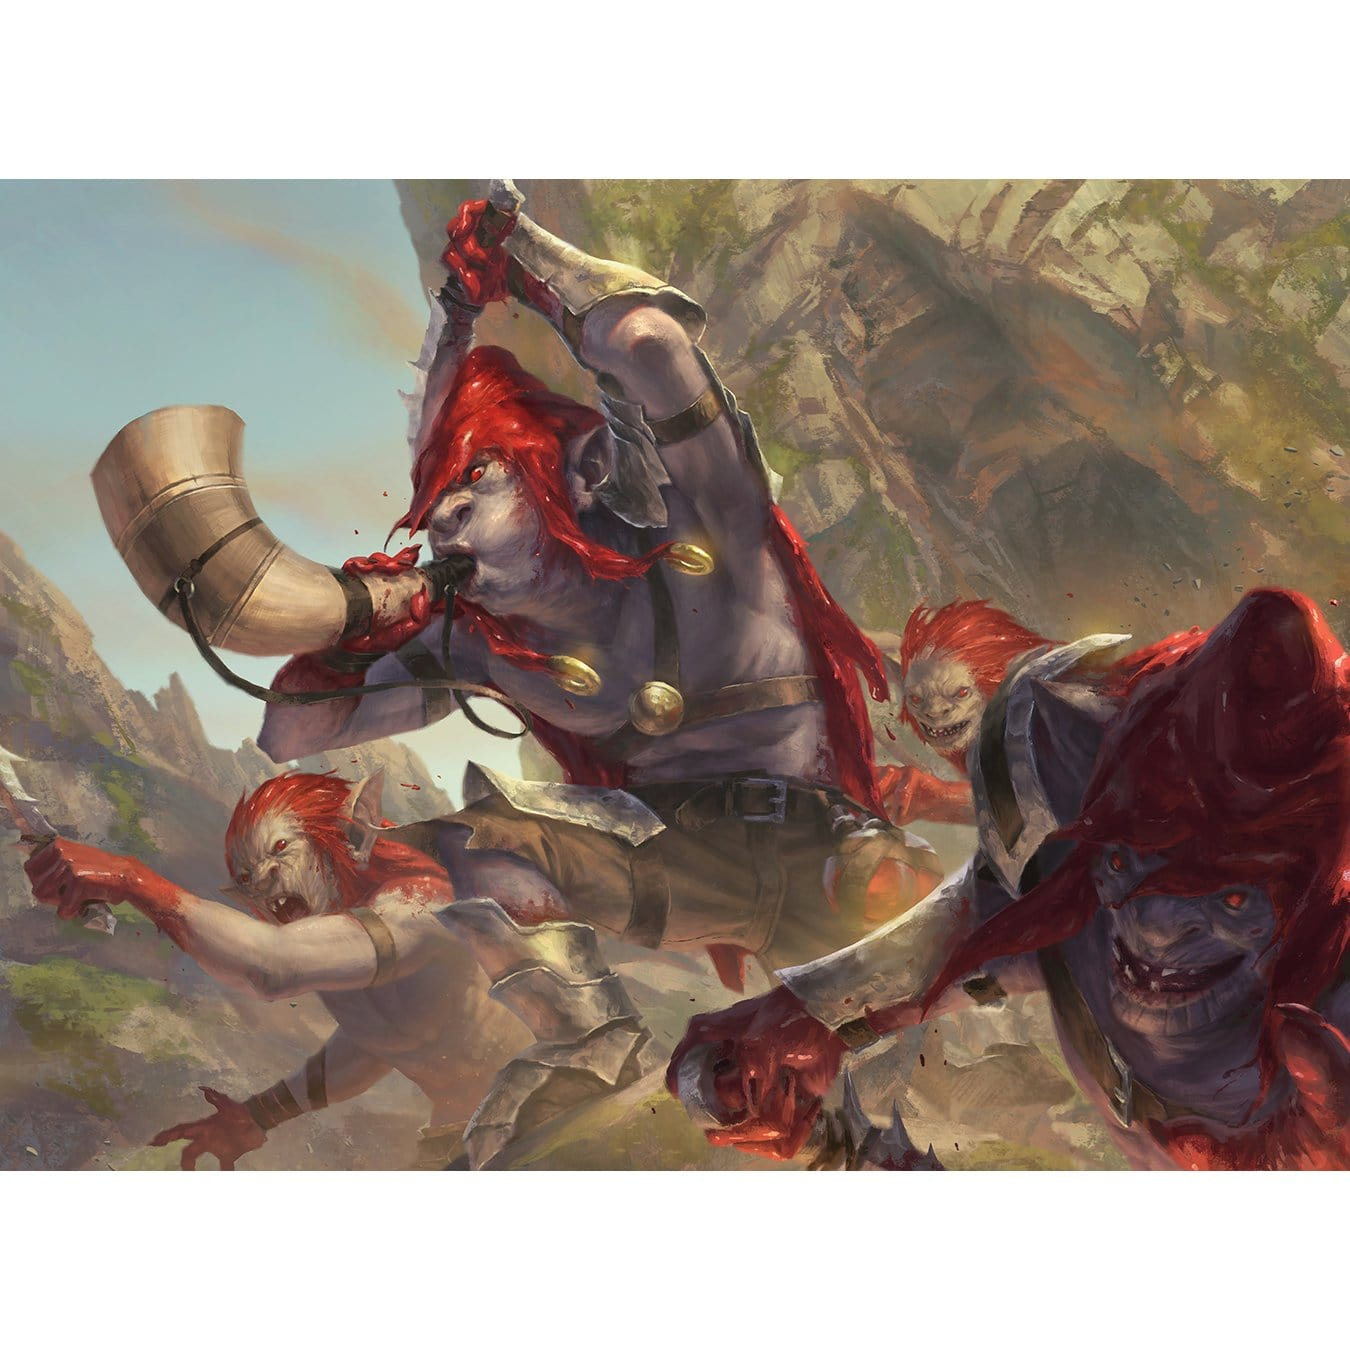 Redcap Raiders Print - Print - Original Magic Art - Accessories for Magic the Gathering and other card games